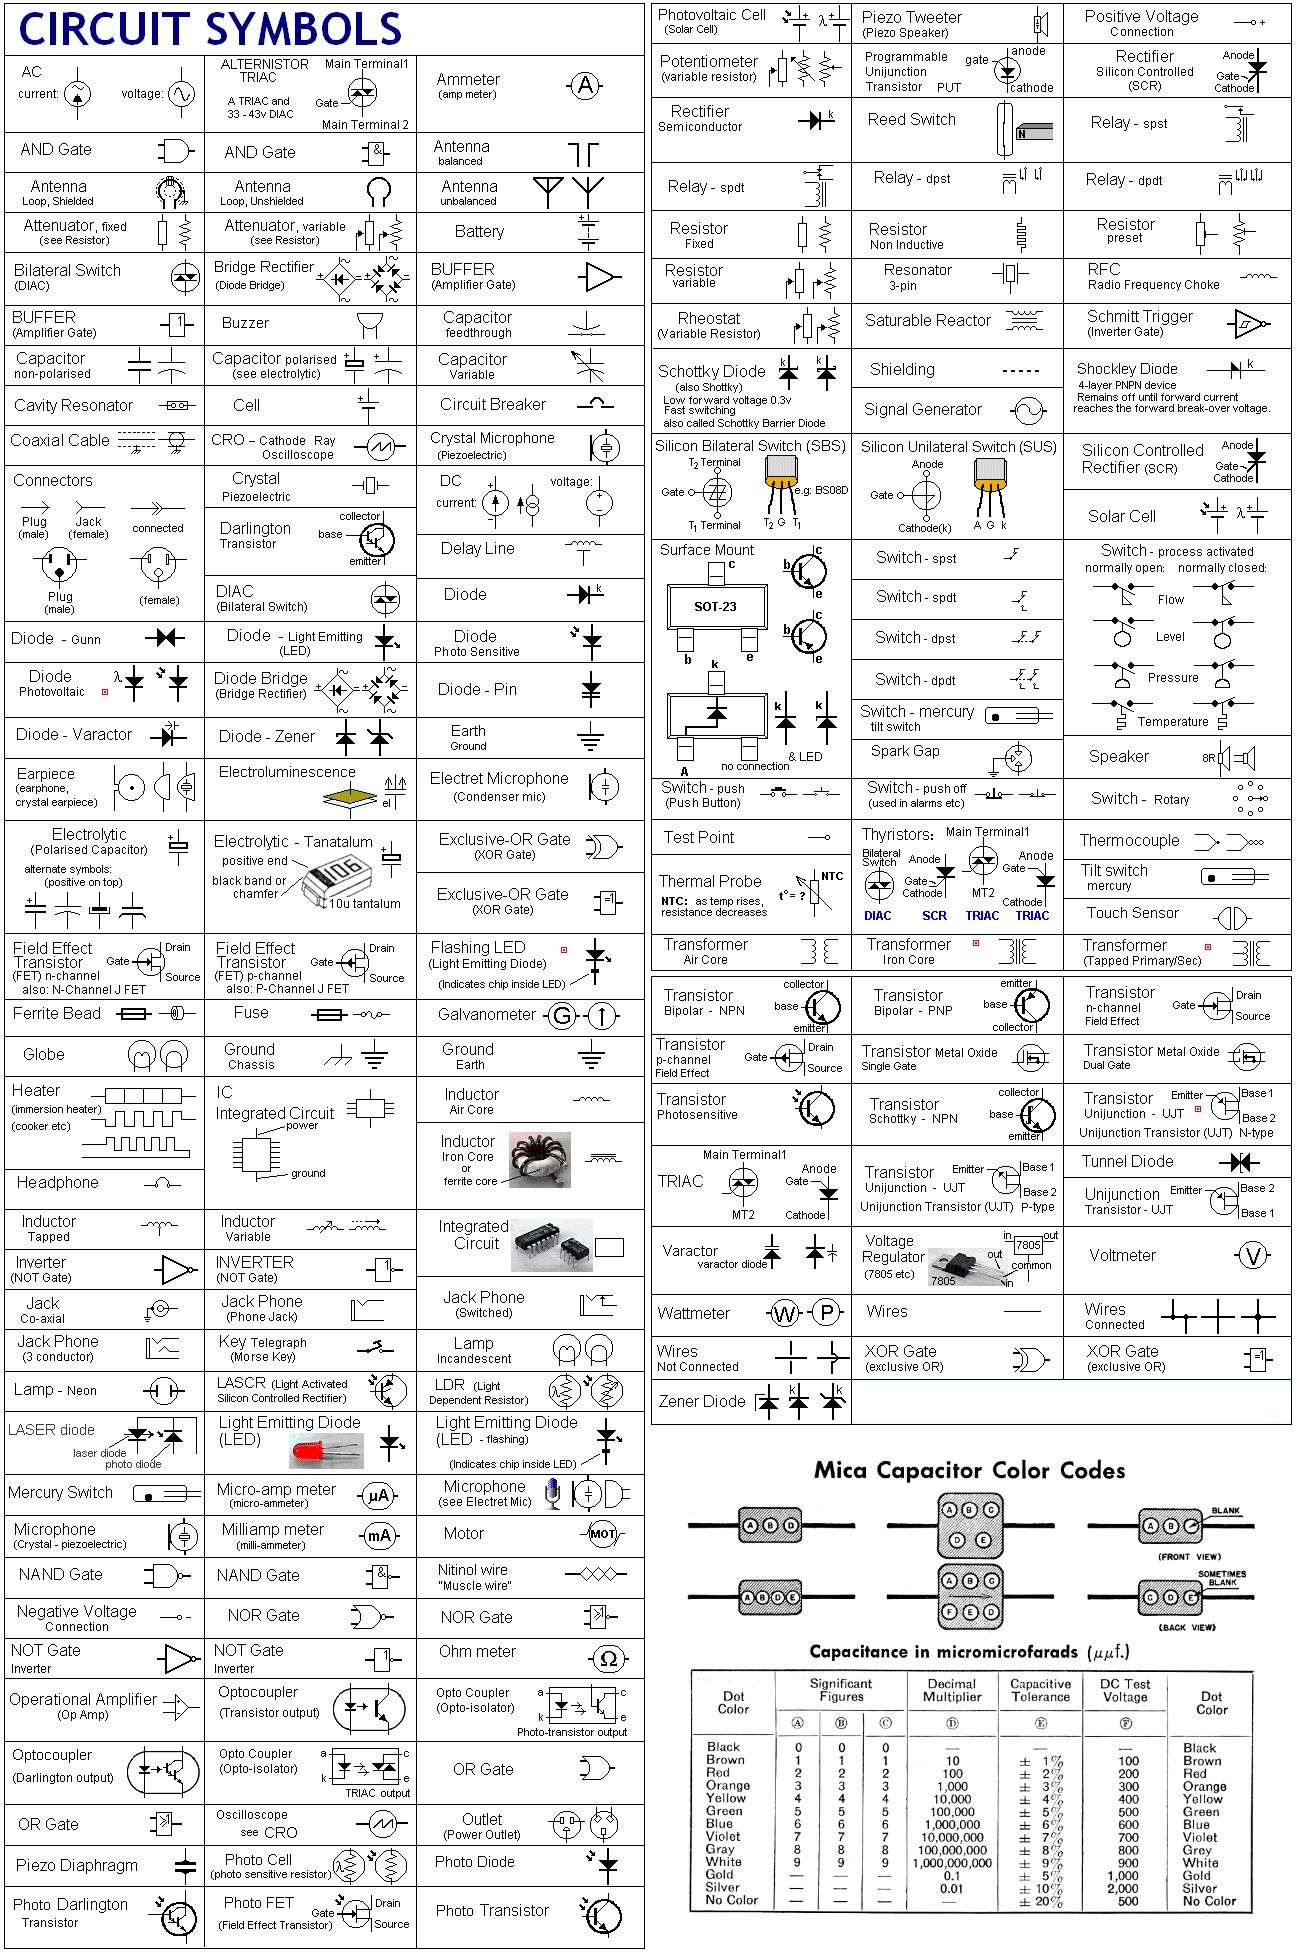 6c64fb84c8e162b28334051891c290f4 schematic symbols chart electric circuit symbols a considerably wiring diagram symbols at soozxer.org